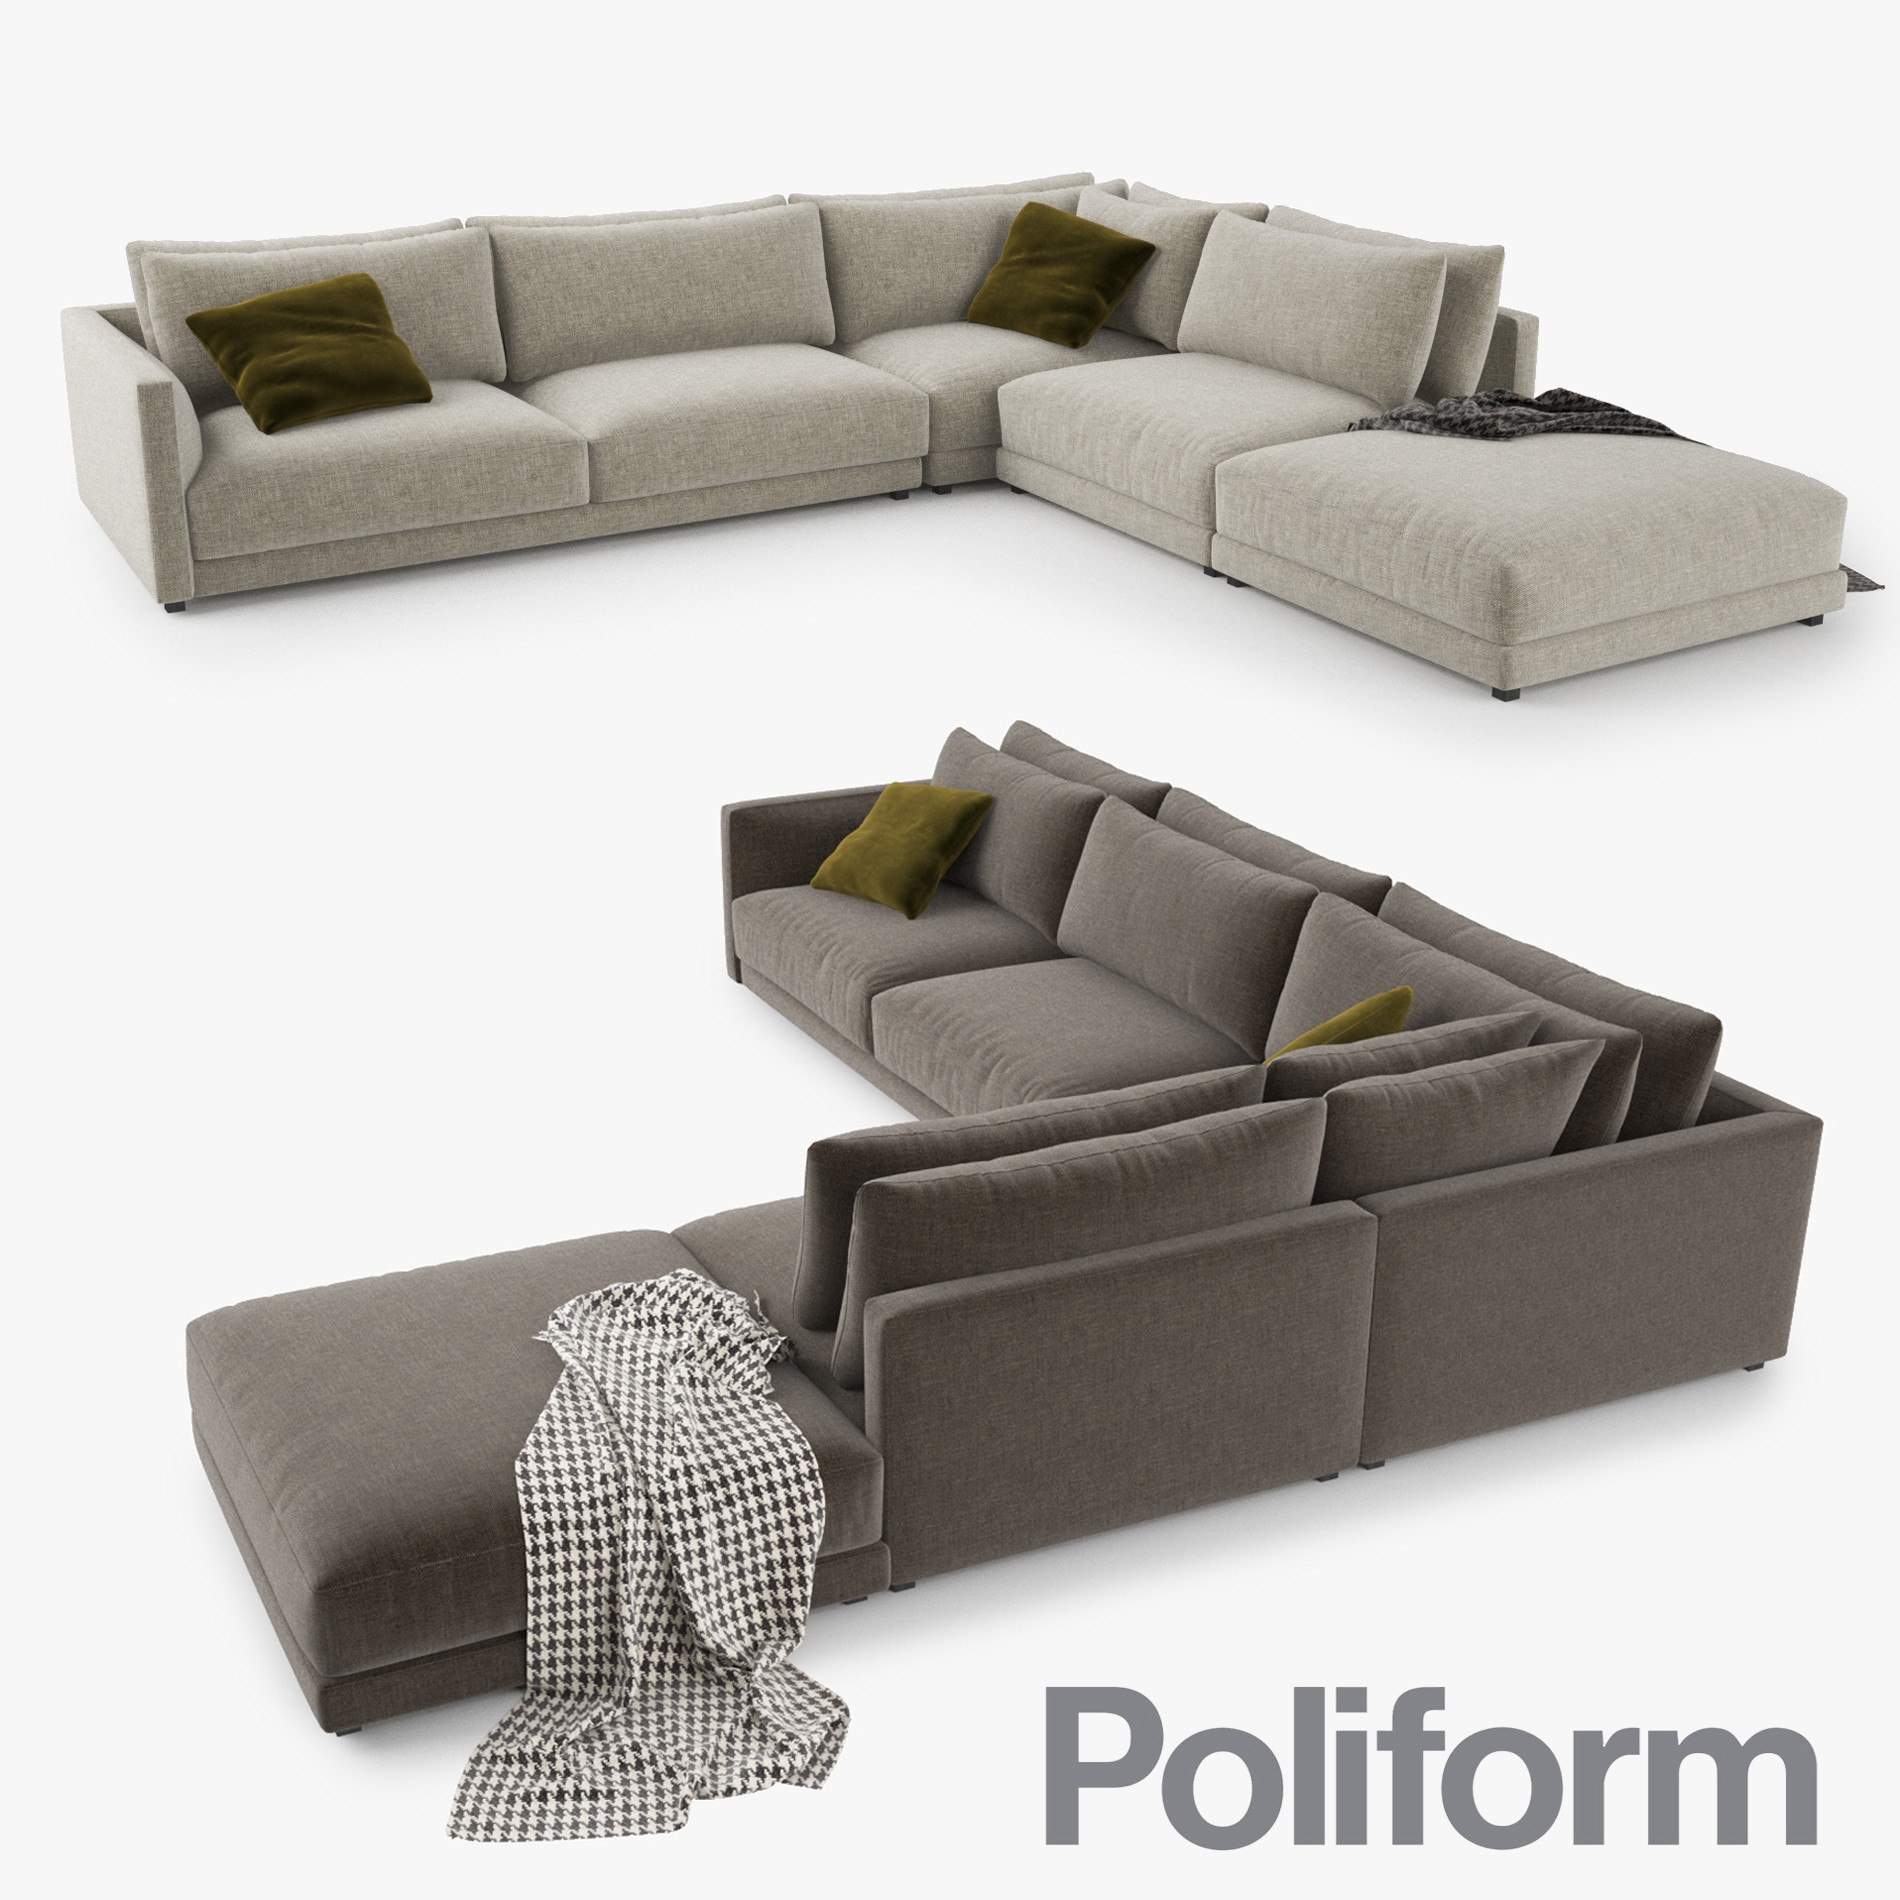 Bristol Poliform Google Search Sofa Pinterest Bristol Throughout Bristol Sofas (Image 3 of 15)